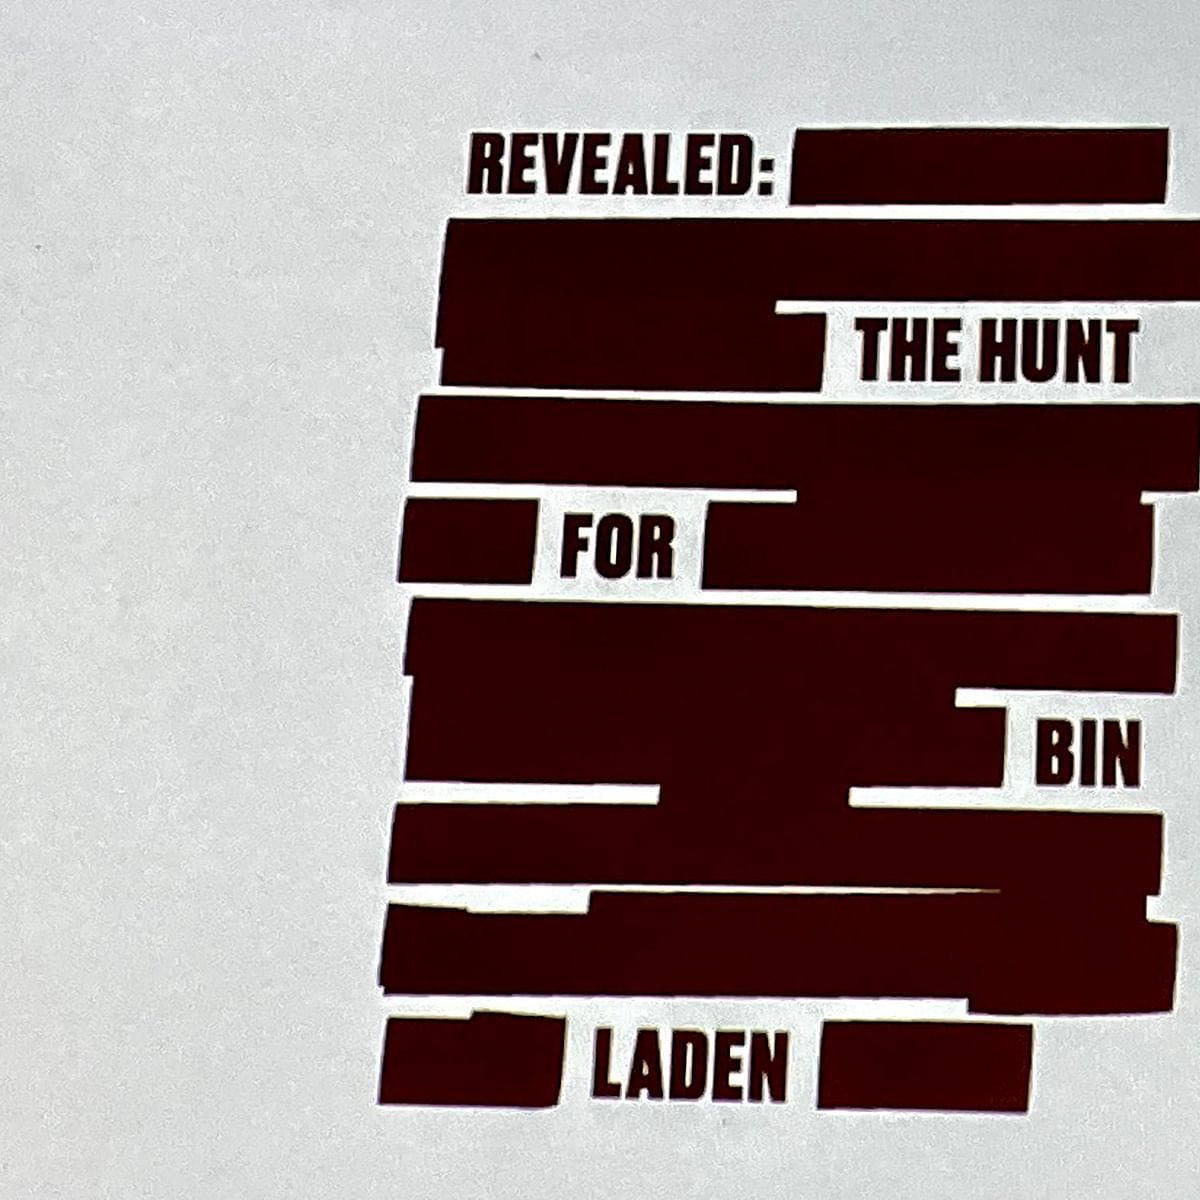 """New York to open """"Revealed: The Hunt for Bin Laden"""" exhibition"""